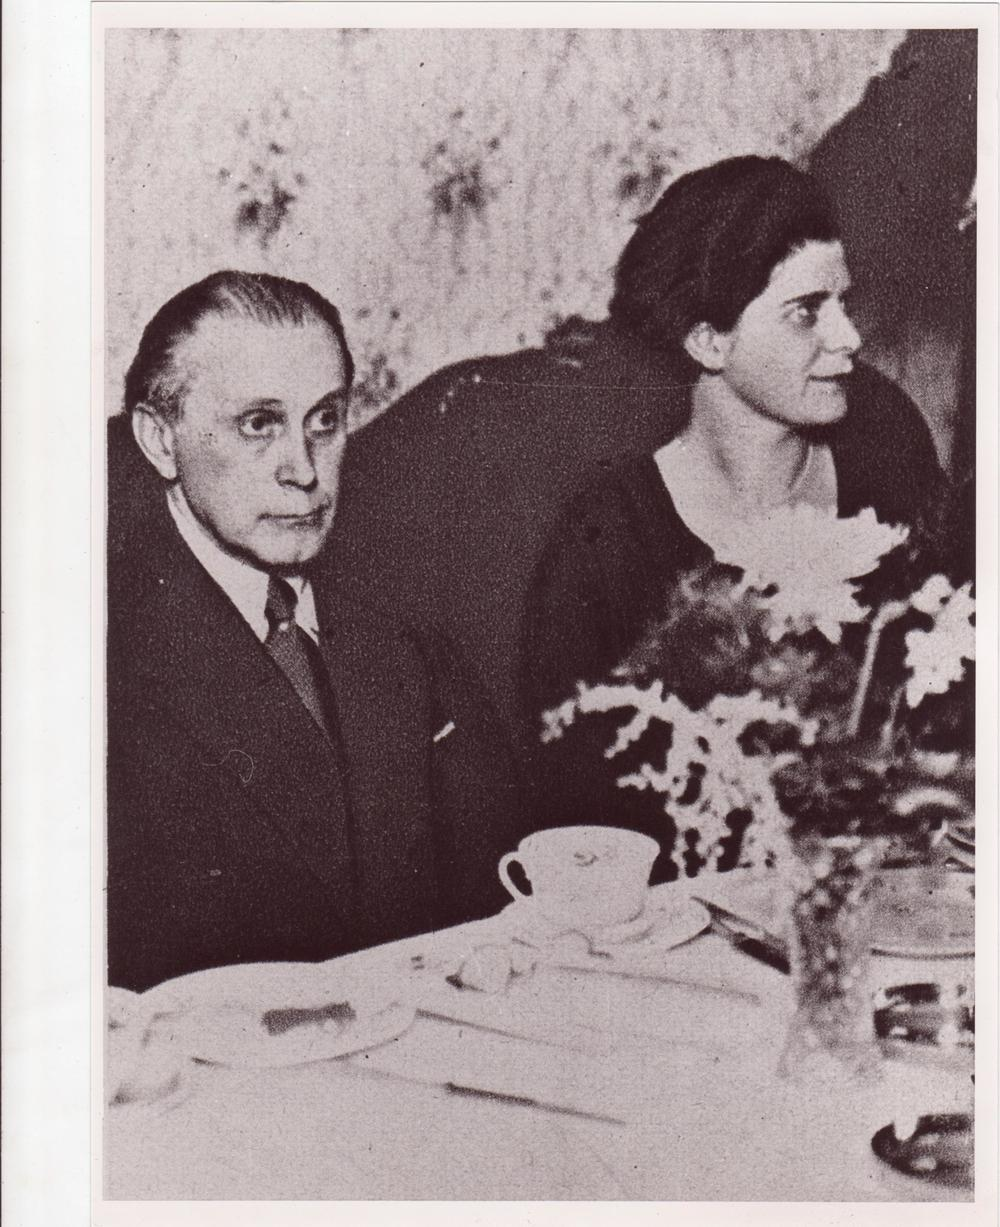 Adolf Loos and Claire Beck Loos, circa 1930. Courtesy Burkhardt Rukschcio.